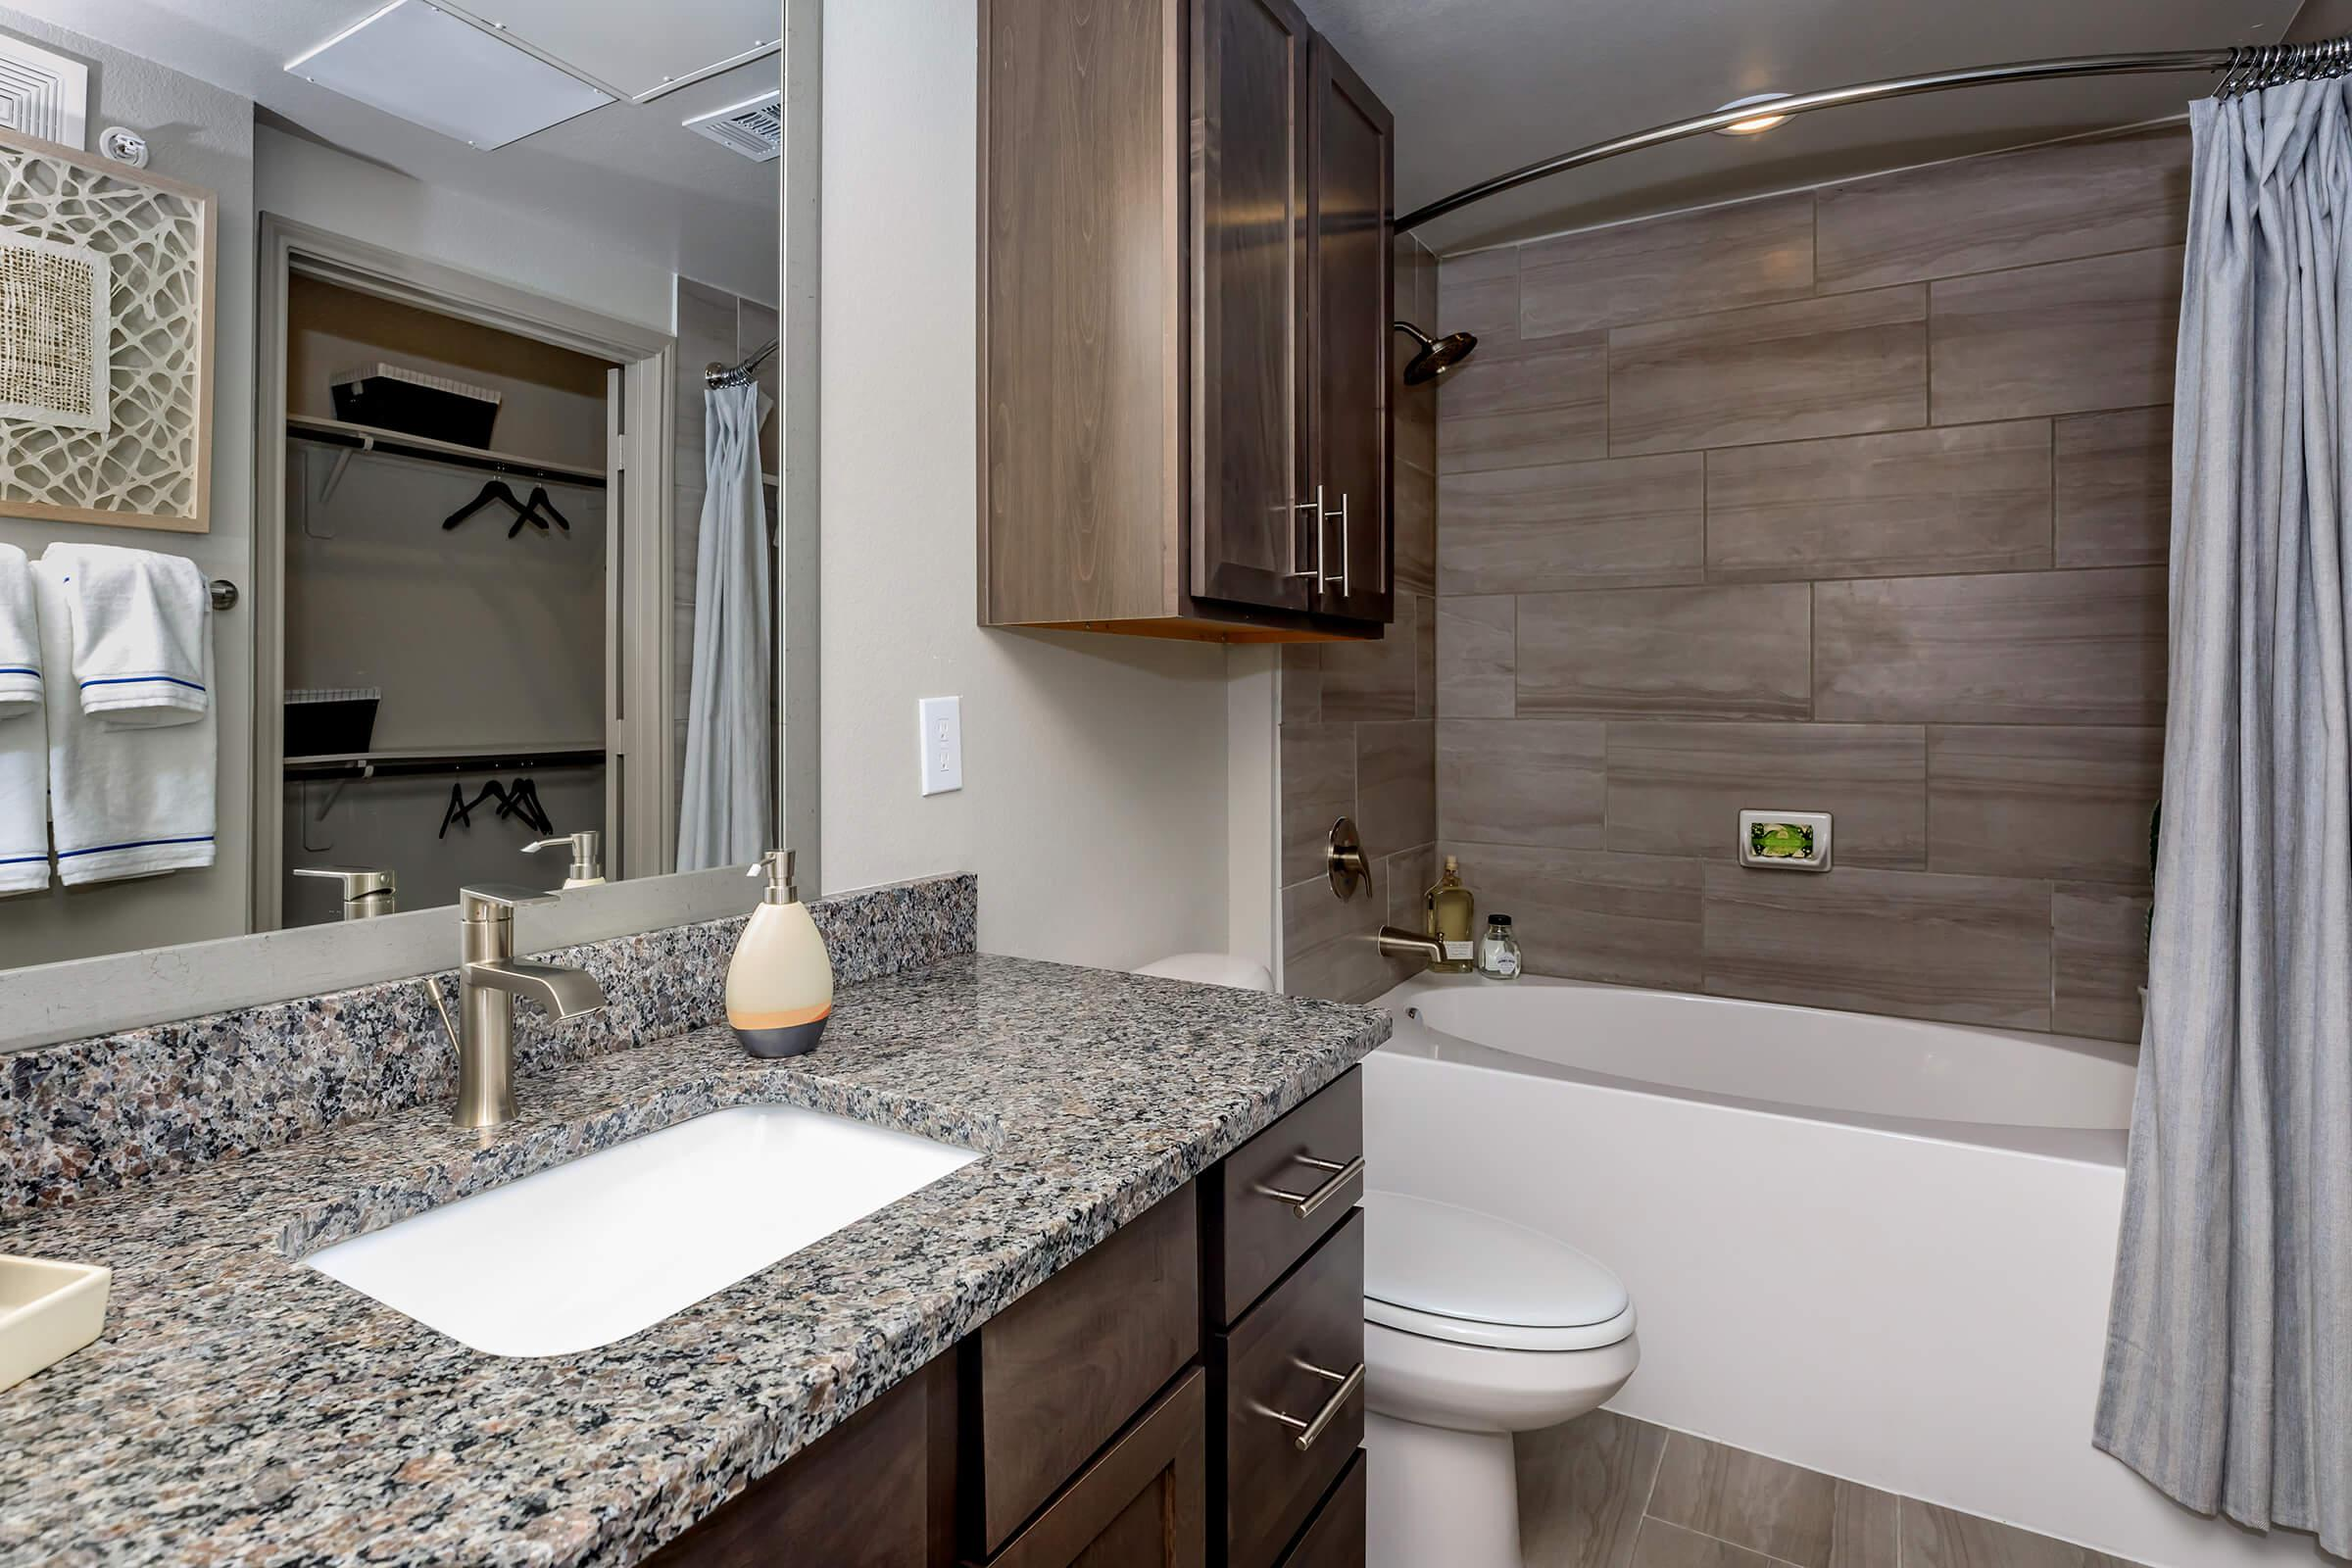 Modern bathroom in brand new apartment. Granite counters, tub with surround, and large mirror.